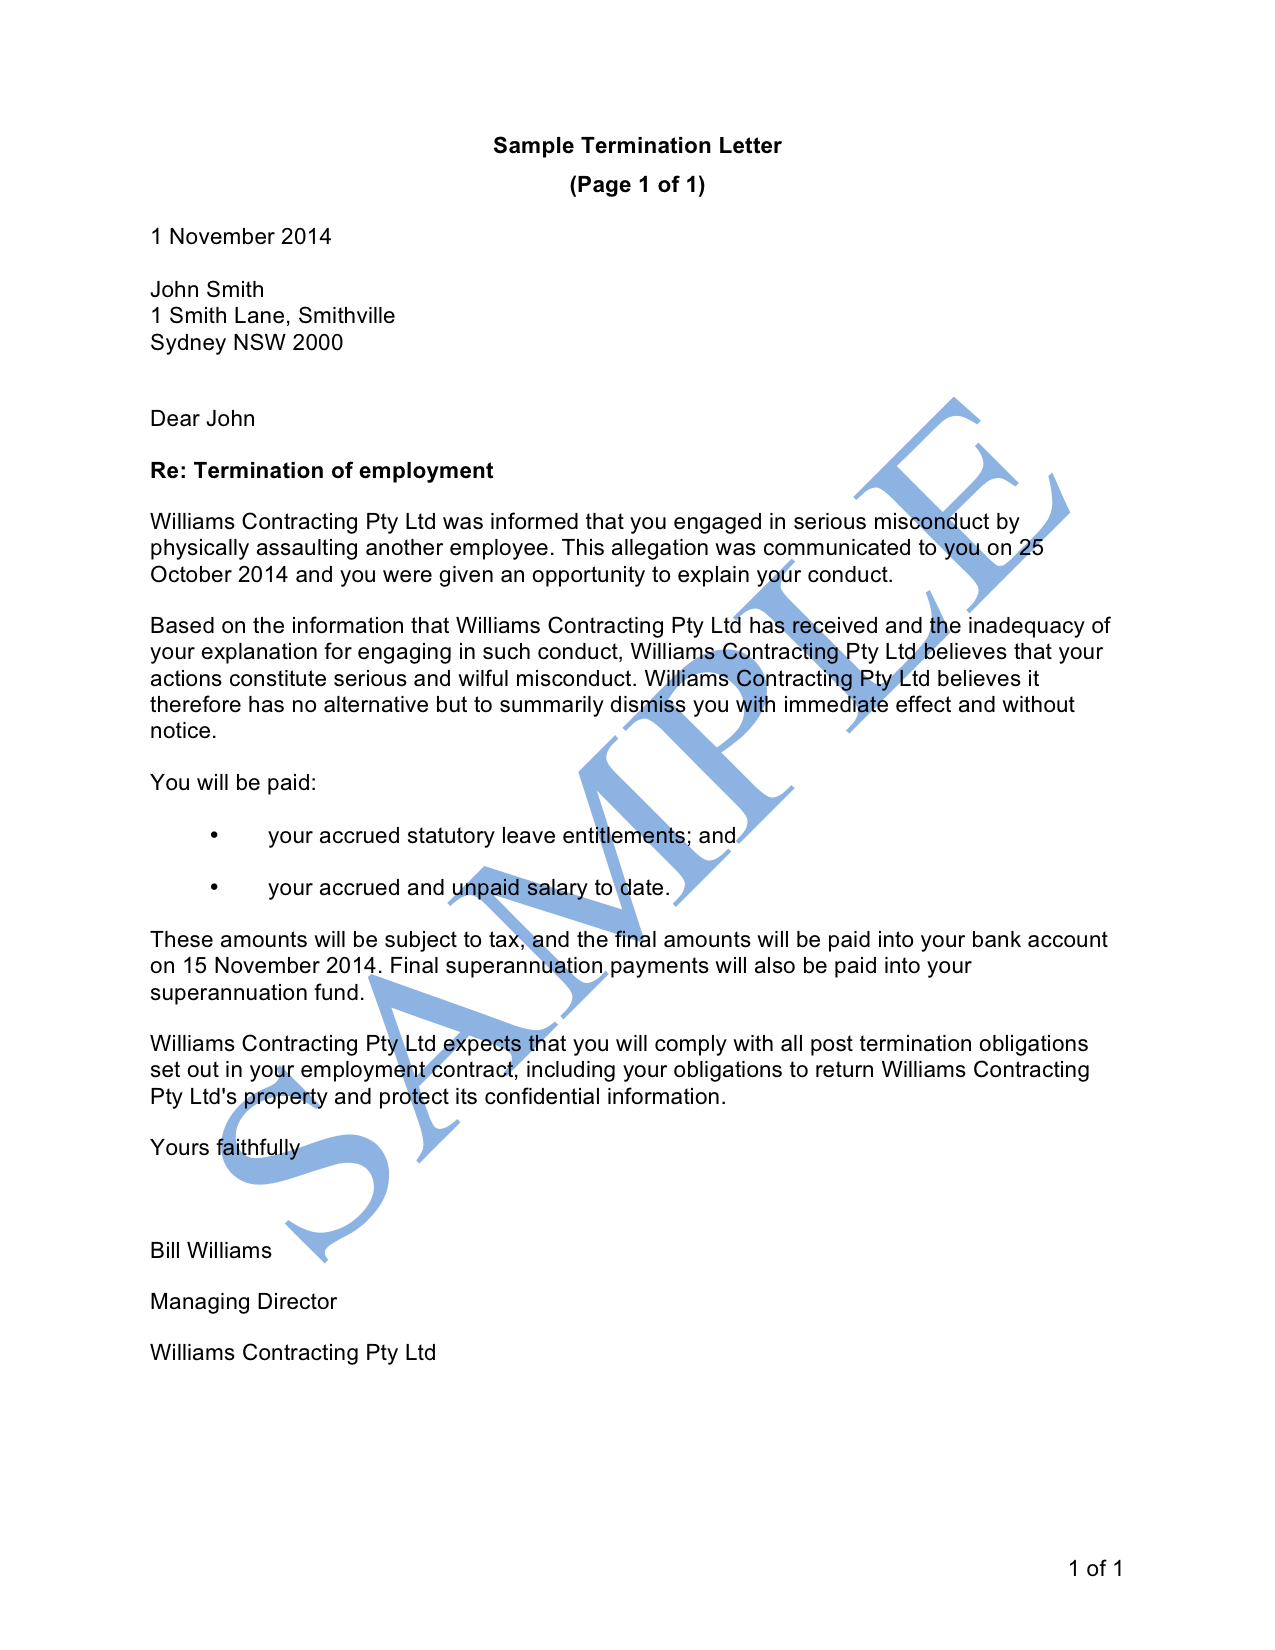 Termination Letter (Serious Misconduct)